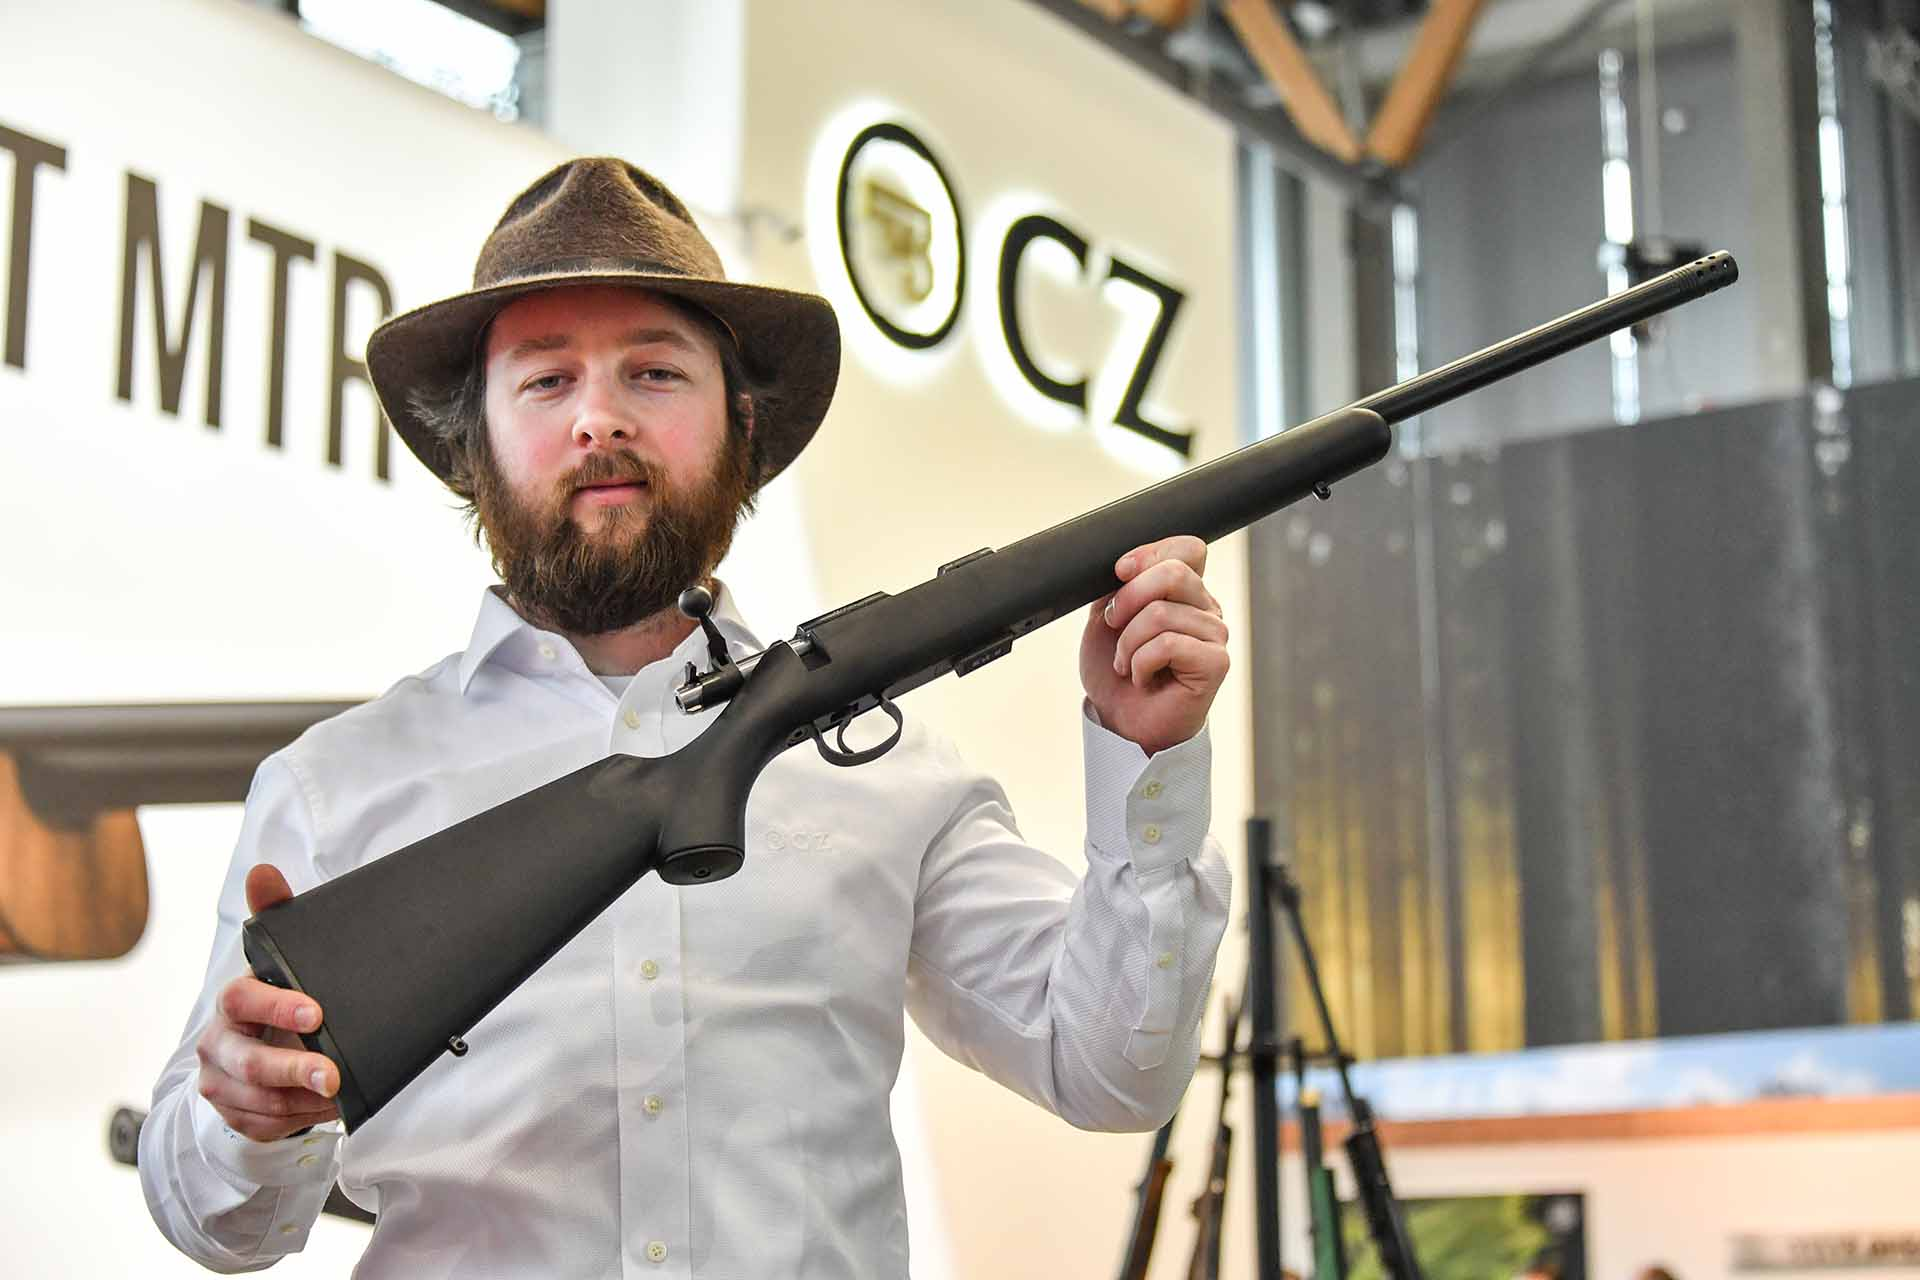 Bolt action rifle CZ 455 Varmint Synthetic with polymer stock with a soft-touch finish in .22 Long Rifle caliber